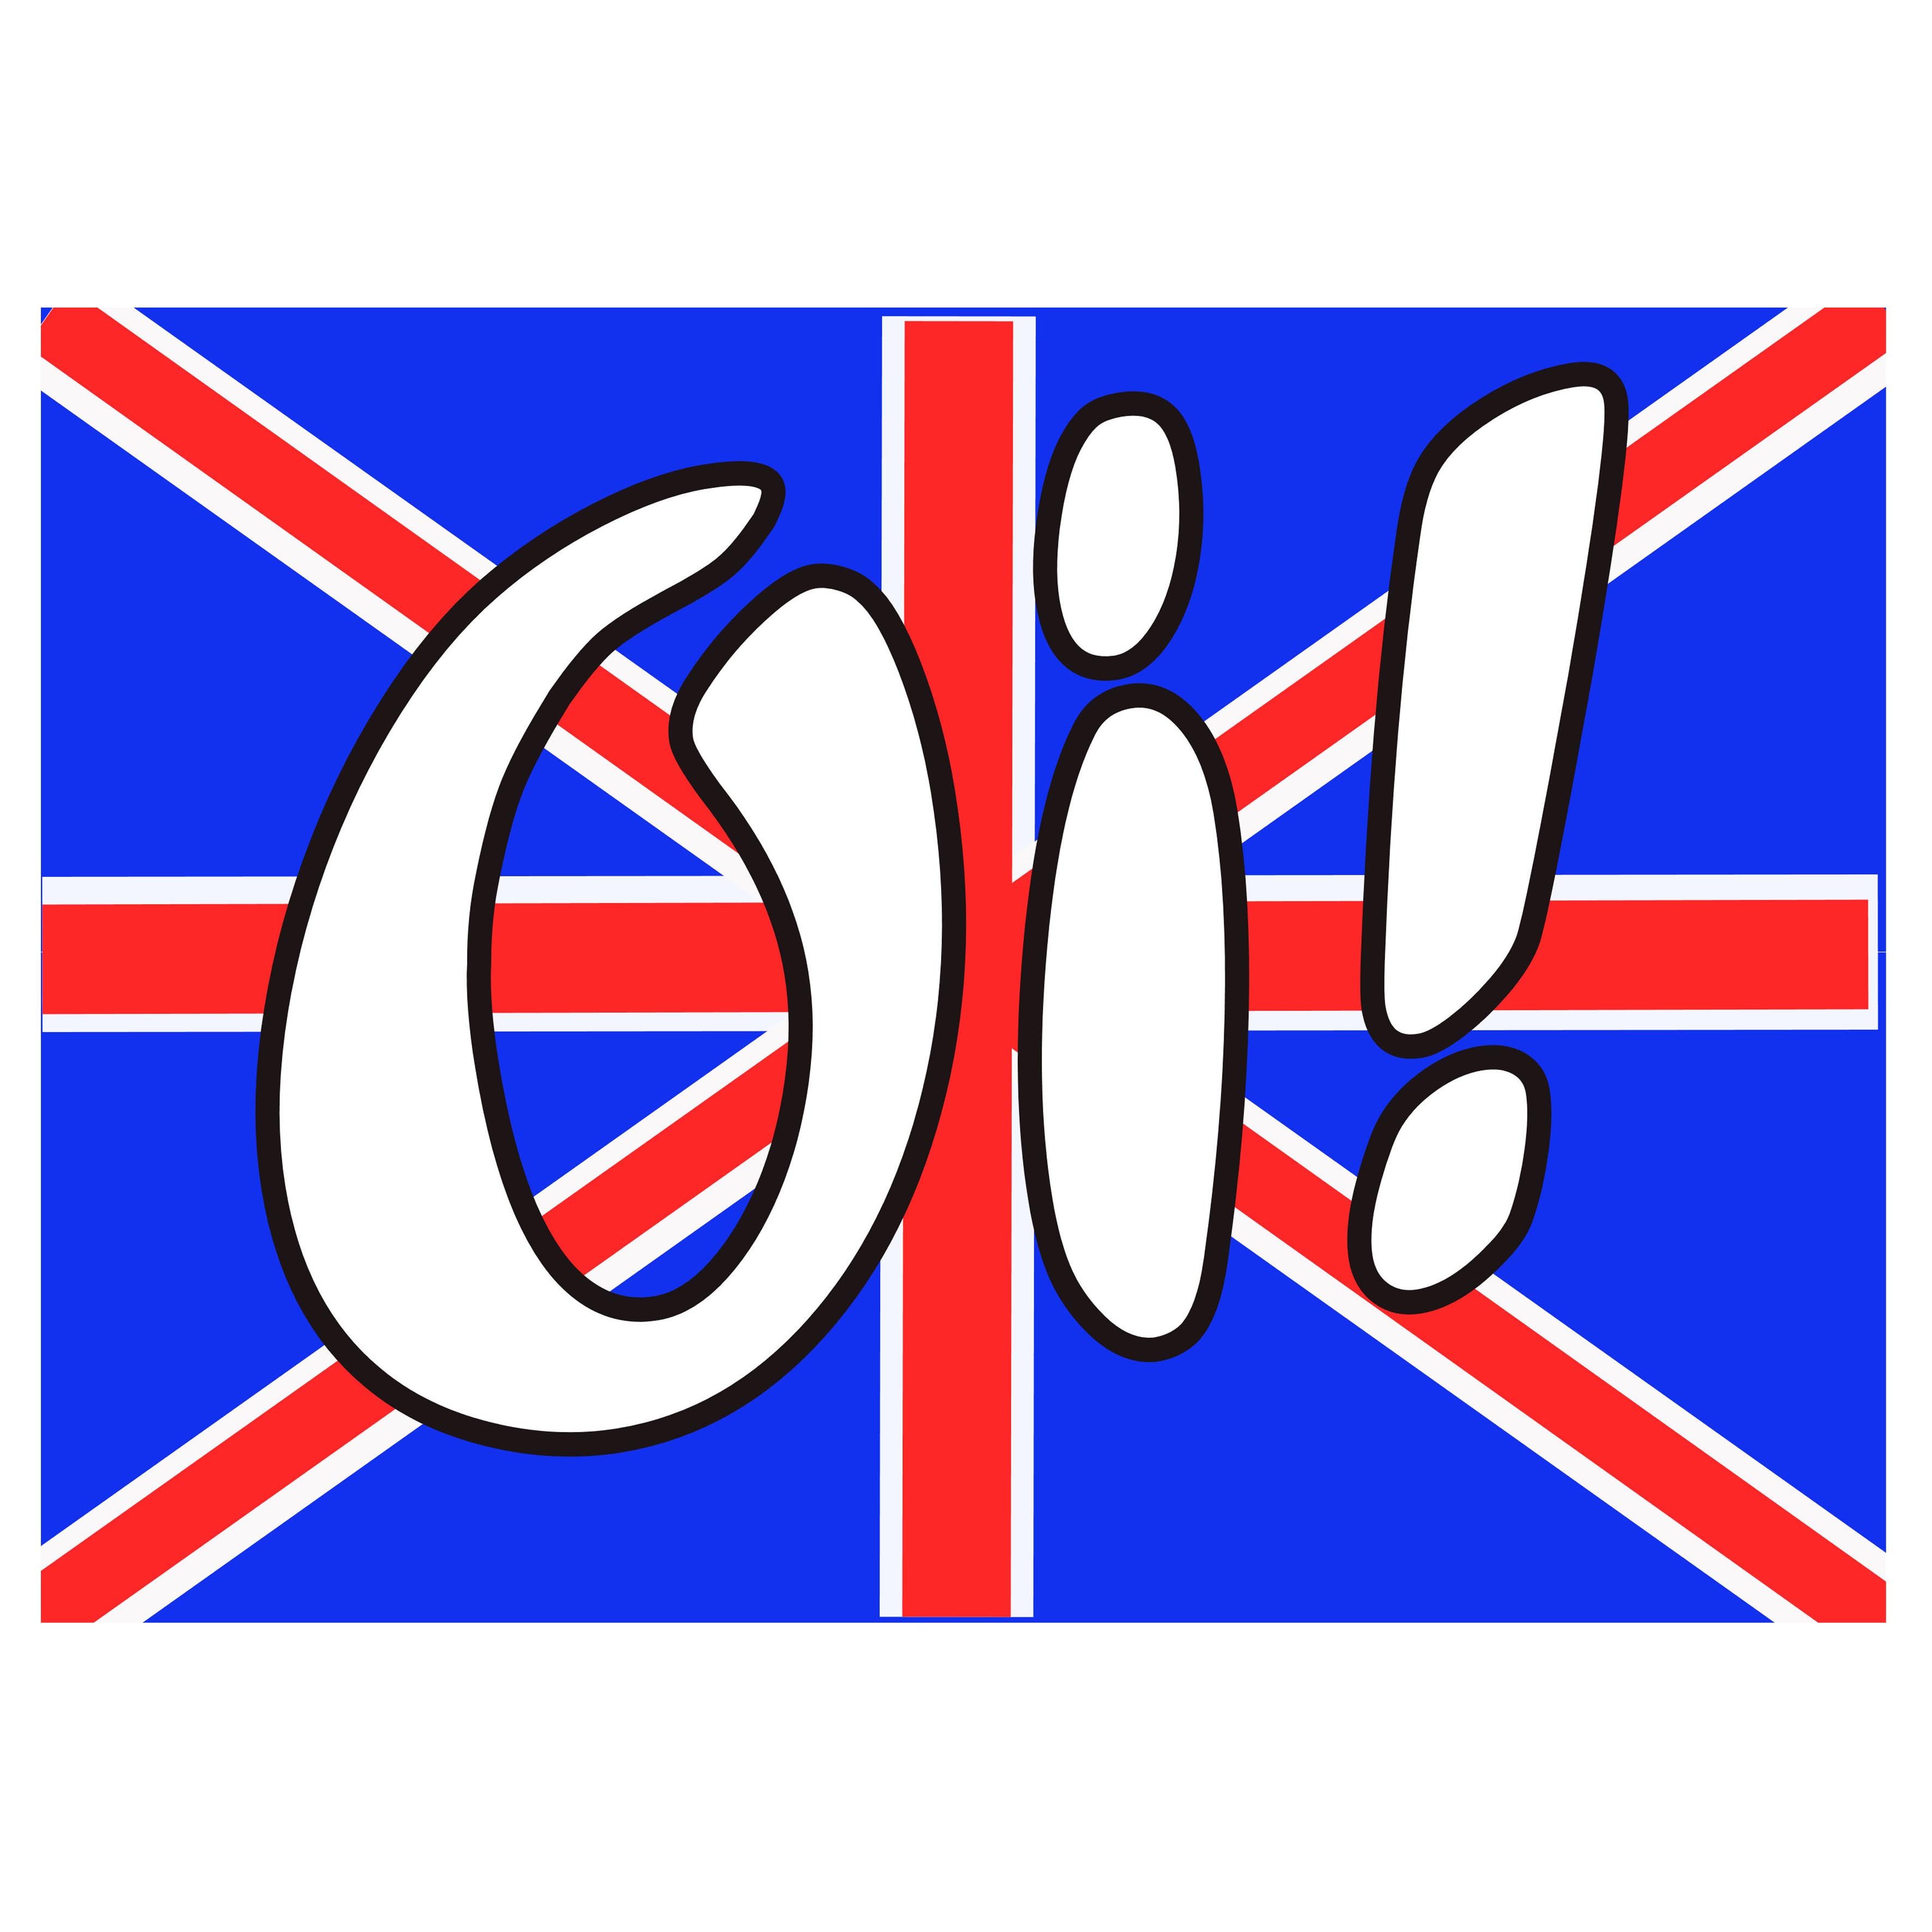 Oi! Sticker